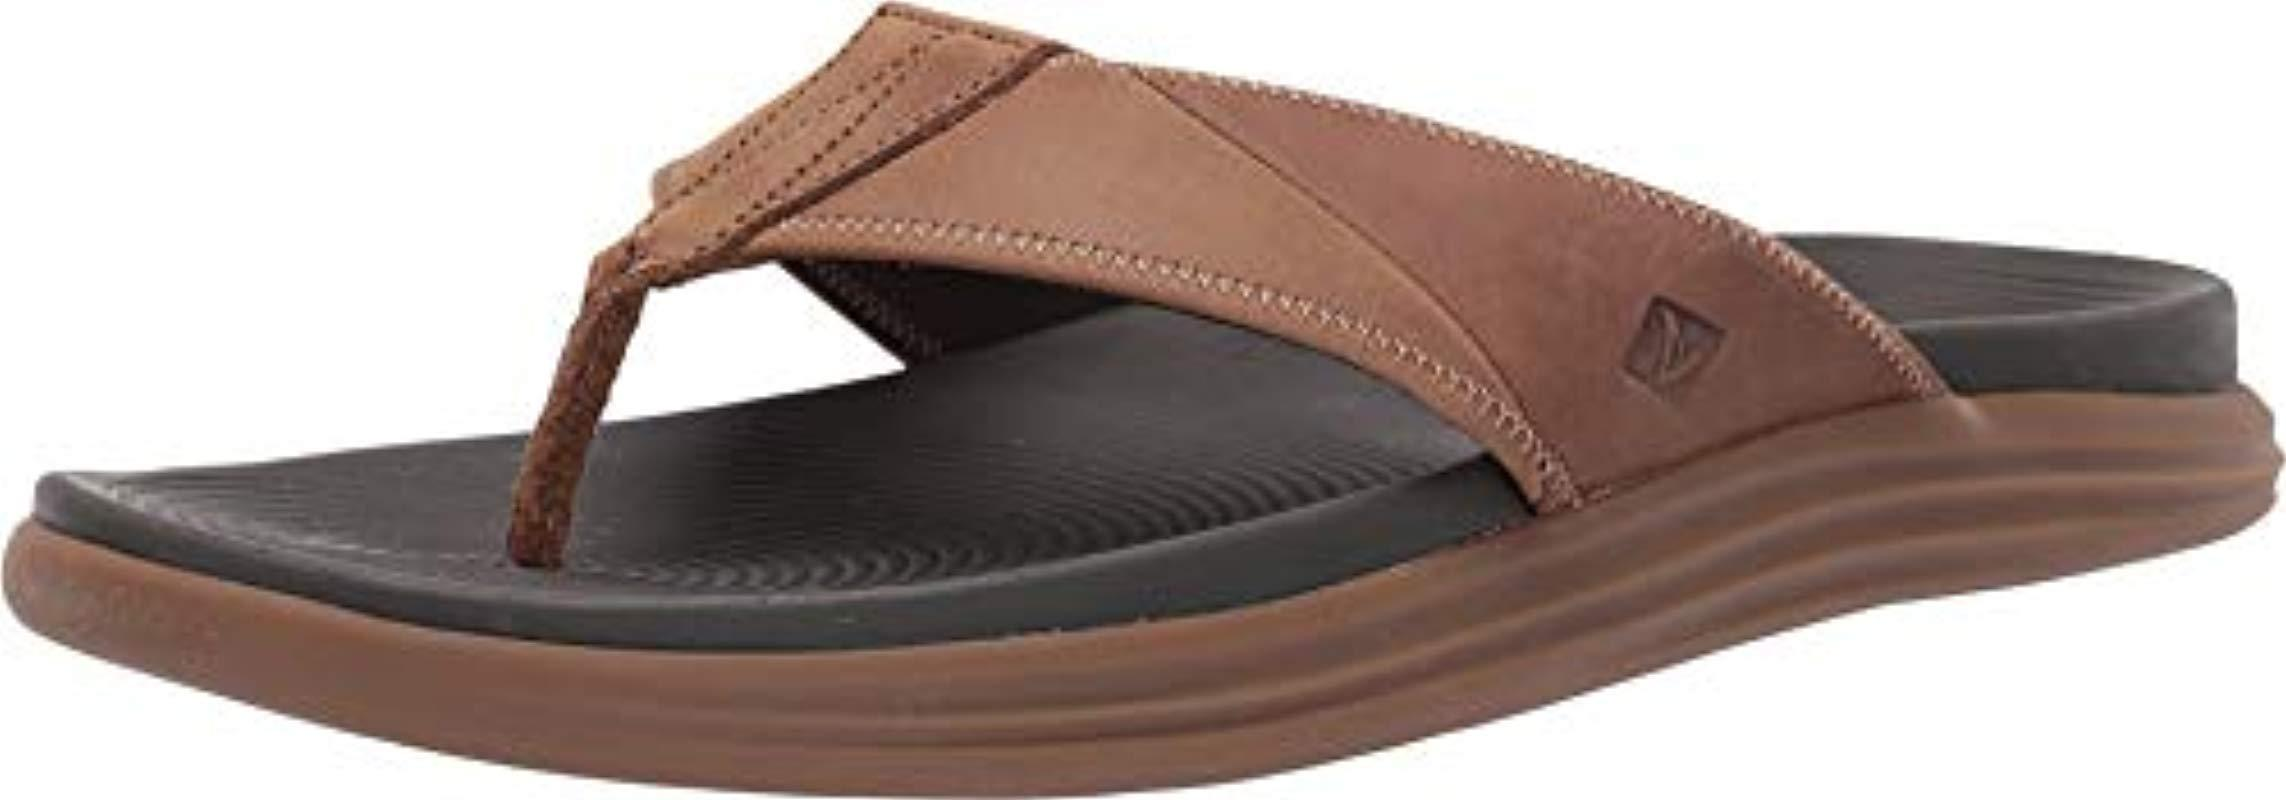 592213ba284 Lyst - Sperry Top-Sider Coil Ivy Perf Boat Shoe Black in Brown for Men